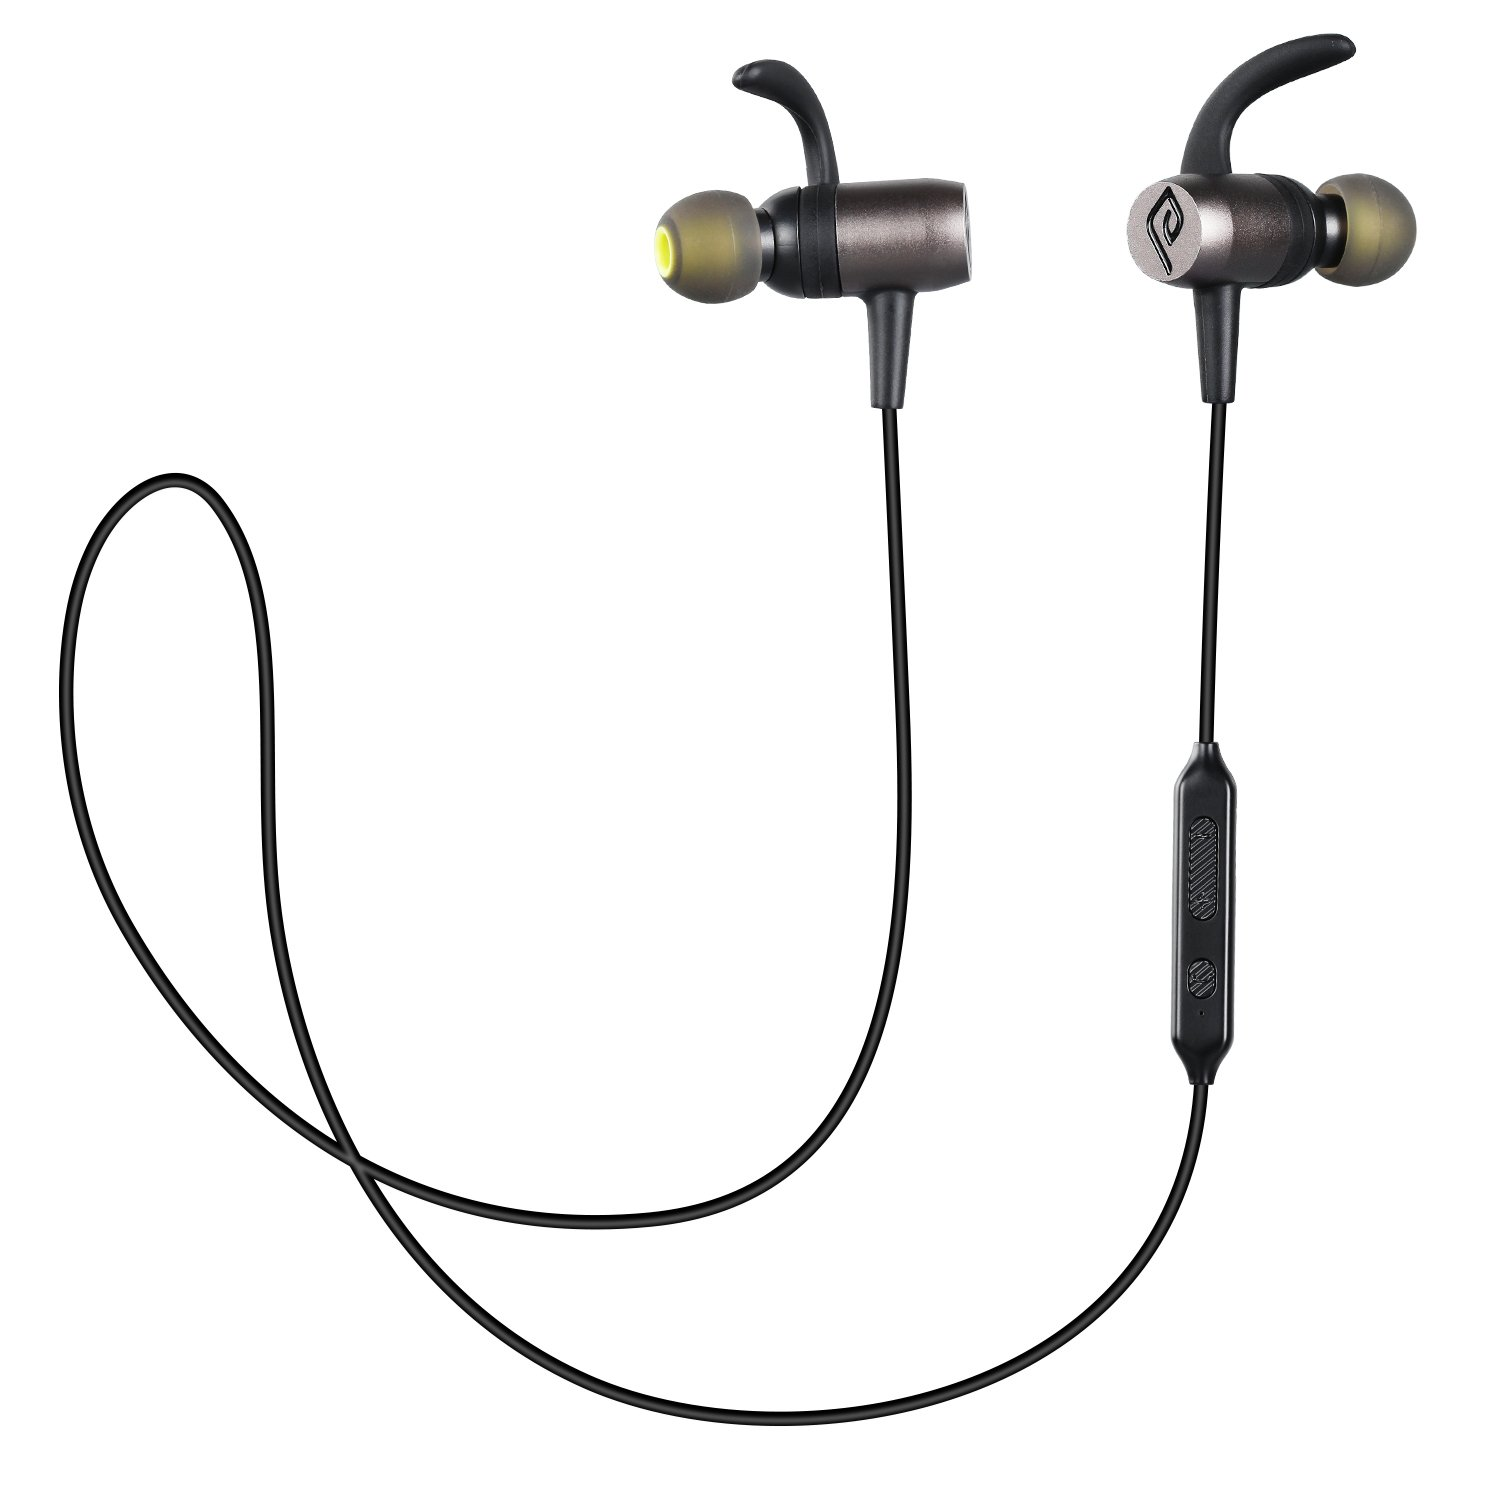 642eb76e4db Get Quotations · Bluetooth Headphones, Parasom A10 Magnetic Portable  Wireless Sports In-ear Stereo Sweatproof Earphones with